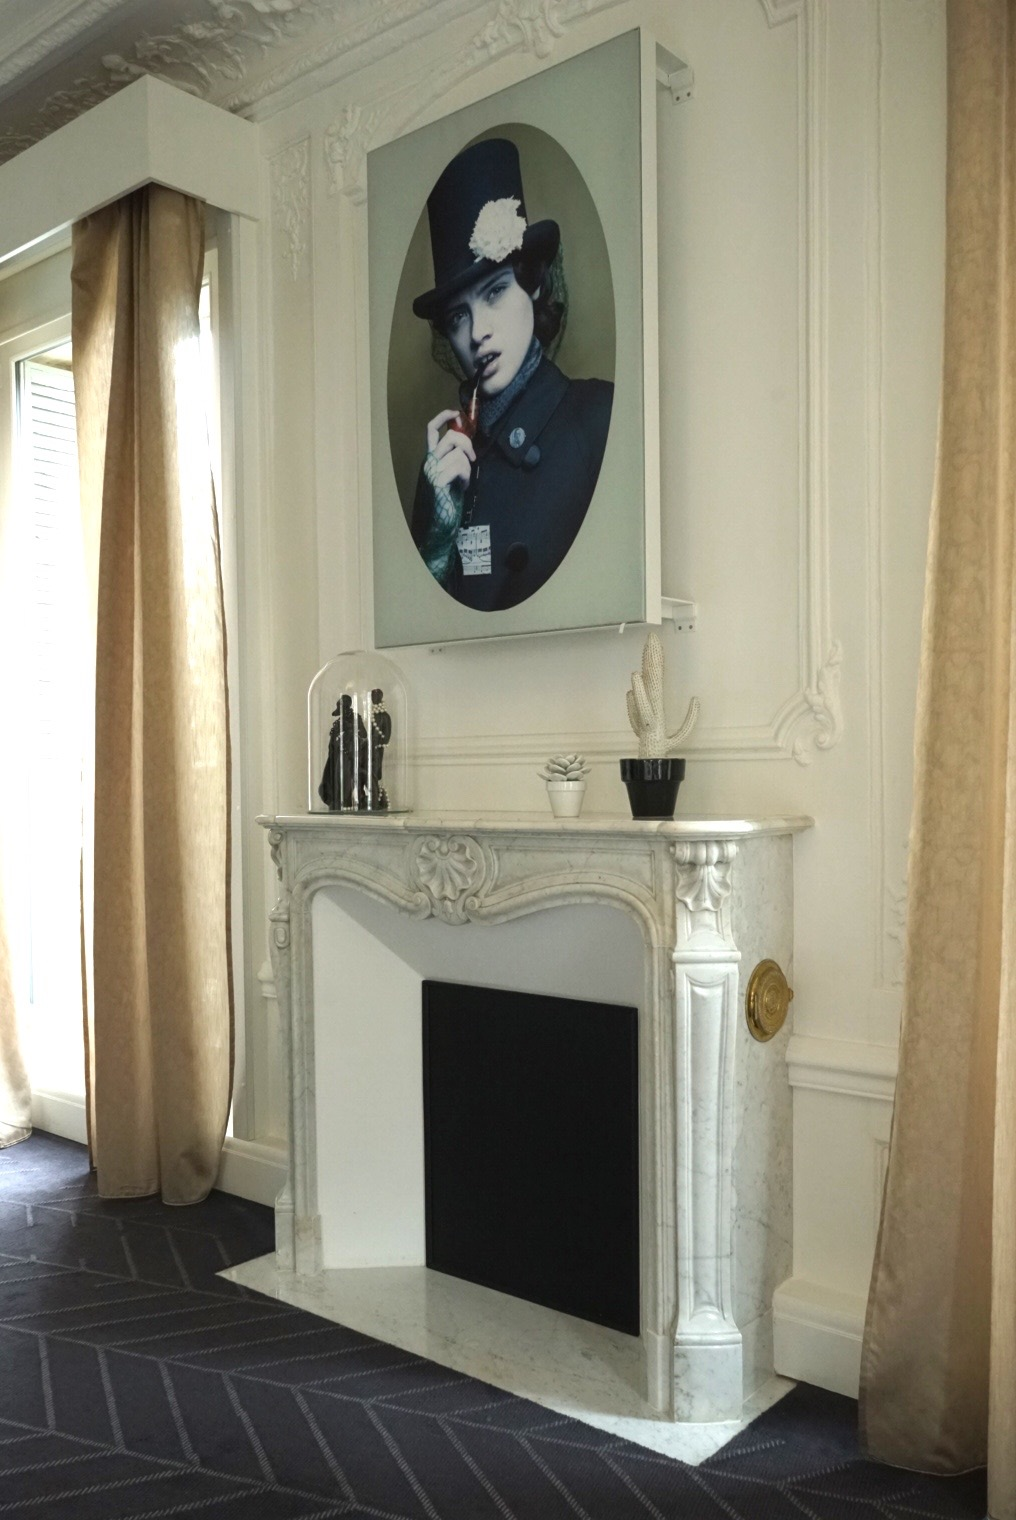 W Paris ~ A cloche covering a figurine sits on the mantel in this hotel room